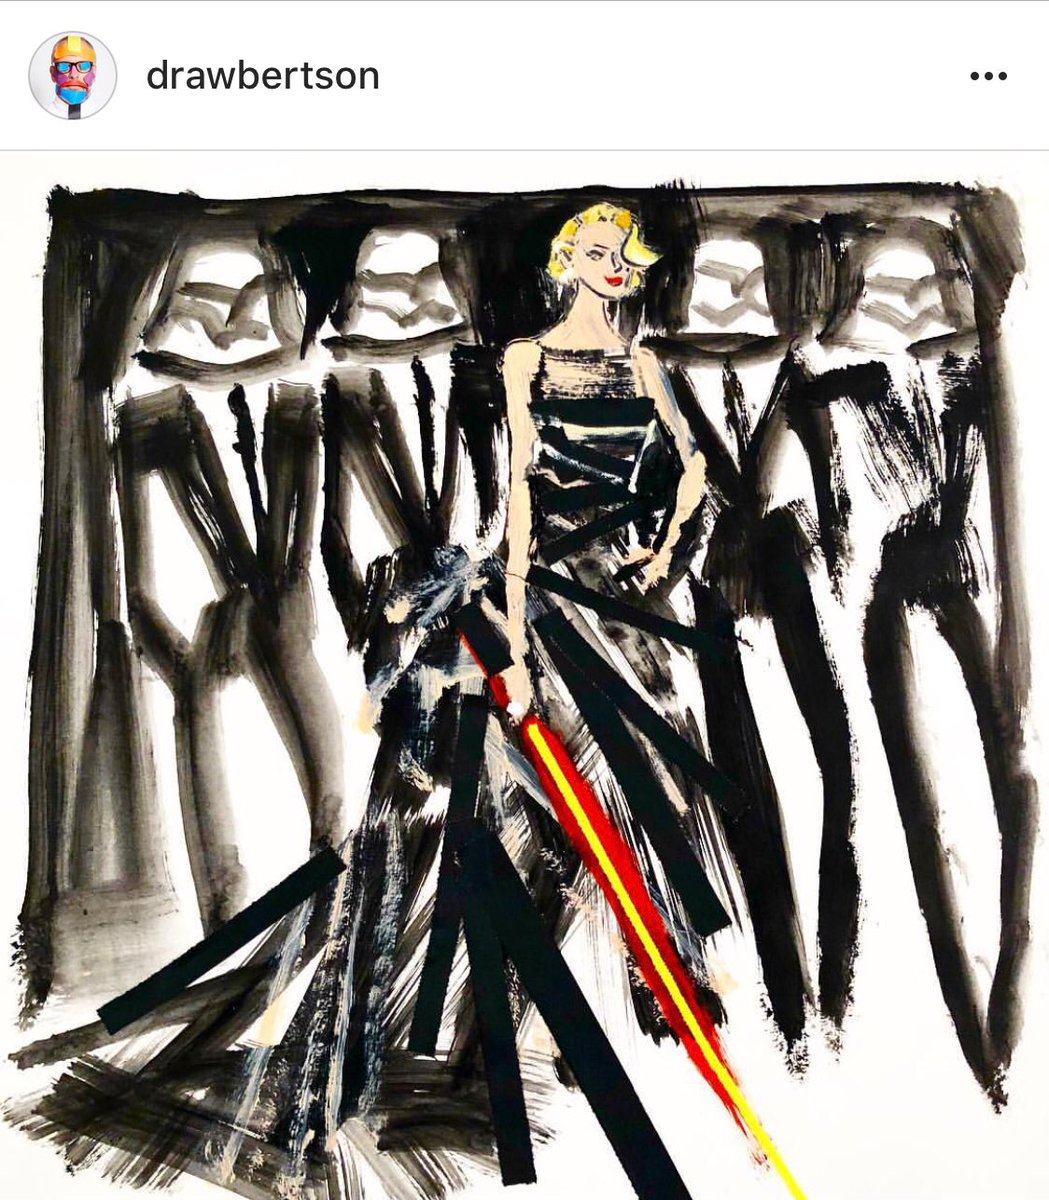 THANK YOU @drawbertson #GoldenGlobes2018 #TIMESUP @gilesgilesgiles ????????????✨✨ https://t.co/JxQeAHhGBc